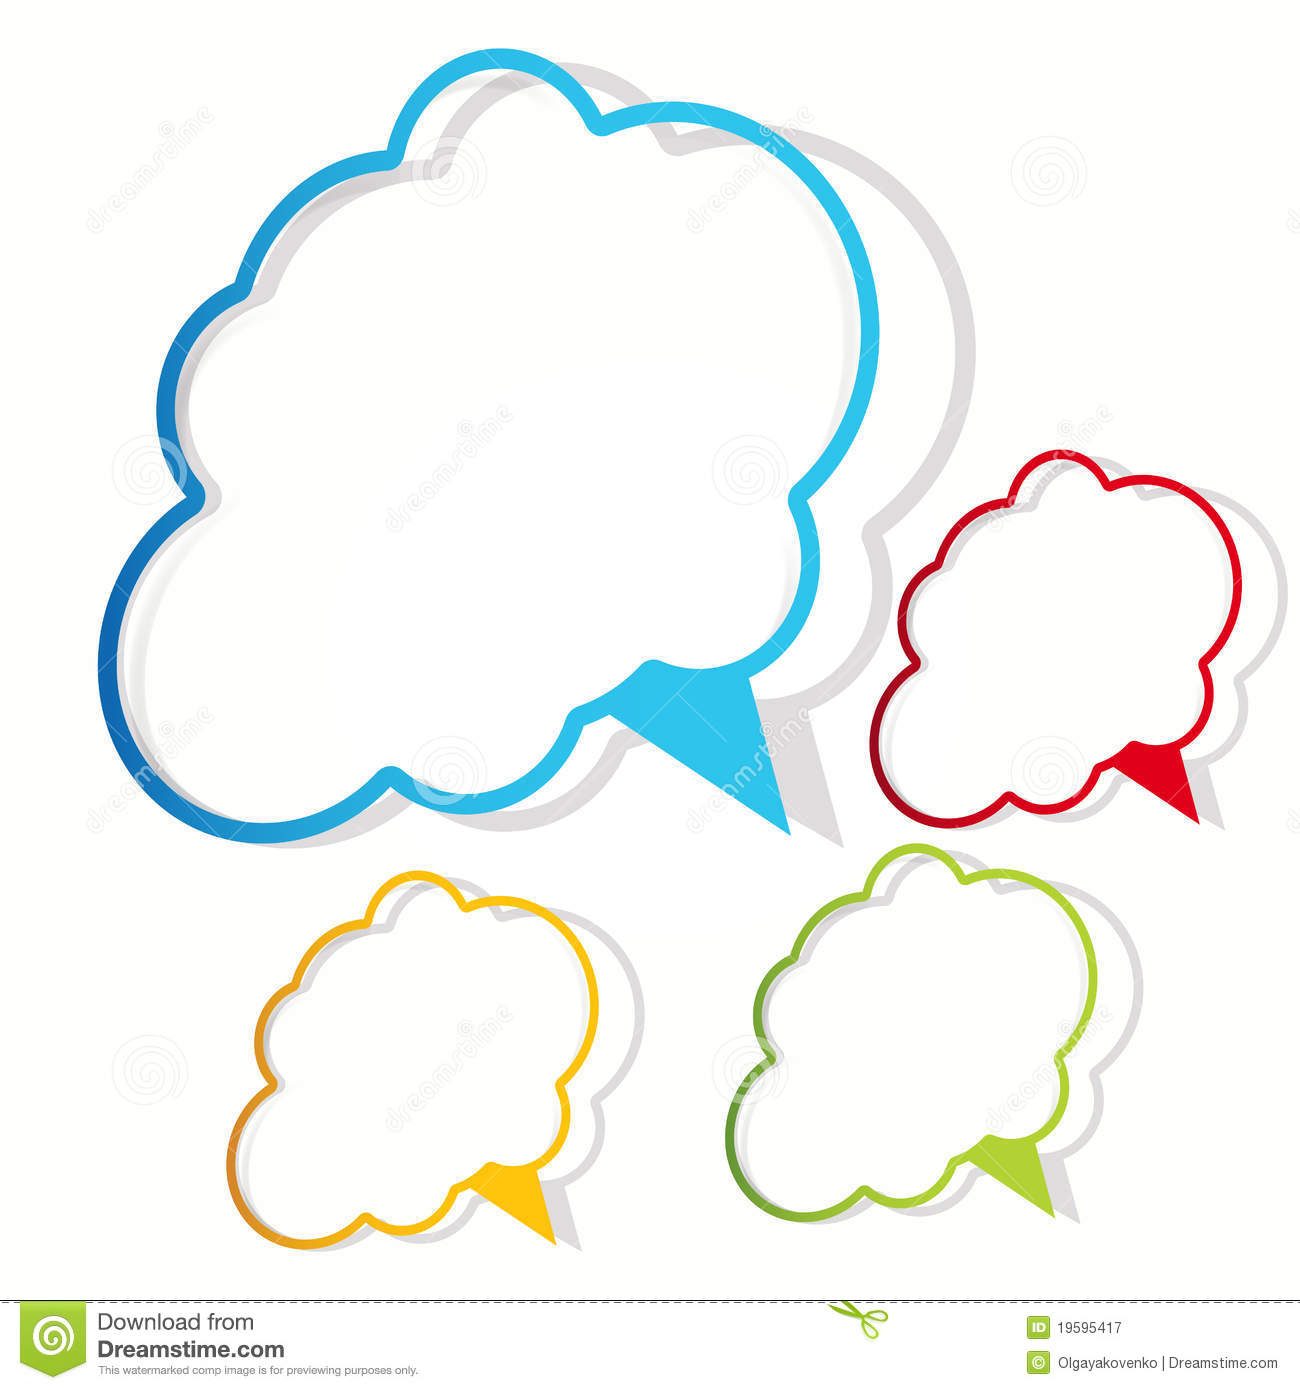 the form nature and characteristics of cloud computing Cloud-enabling technologies significantly helped to form the cloud, and it is unlikely that cloud computing could have existed without them we discuss these more closely in the next.